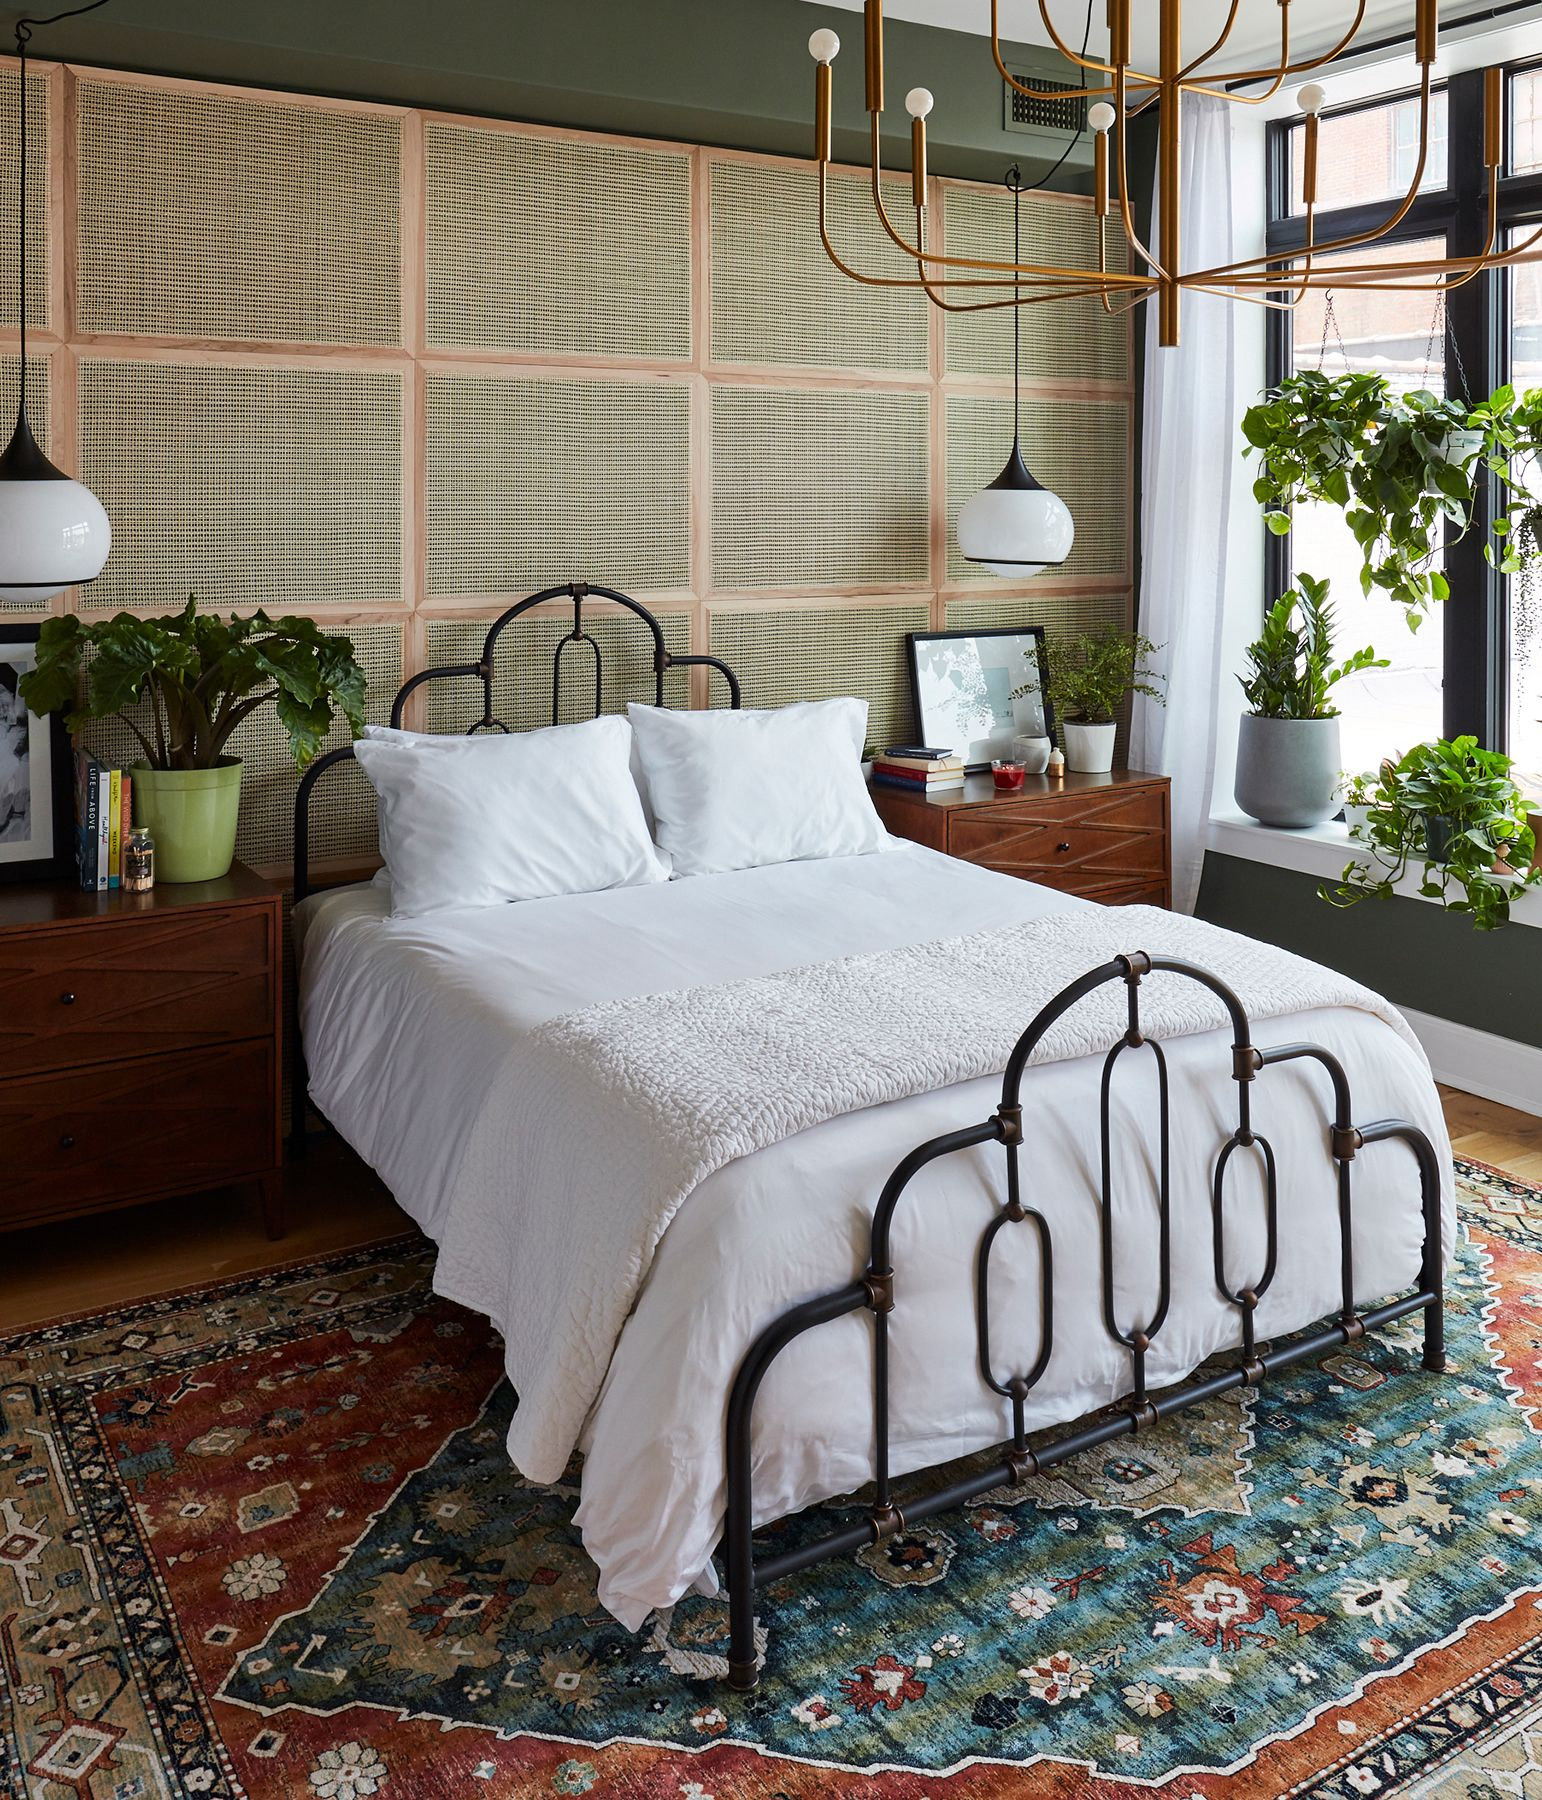 Step Inside The 2019 Real Simple Home Find 250 Design Ideas Apartment Bedroom Decor Home Bedroom Cheap Bedroom Decor Real simple bedroom ideas